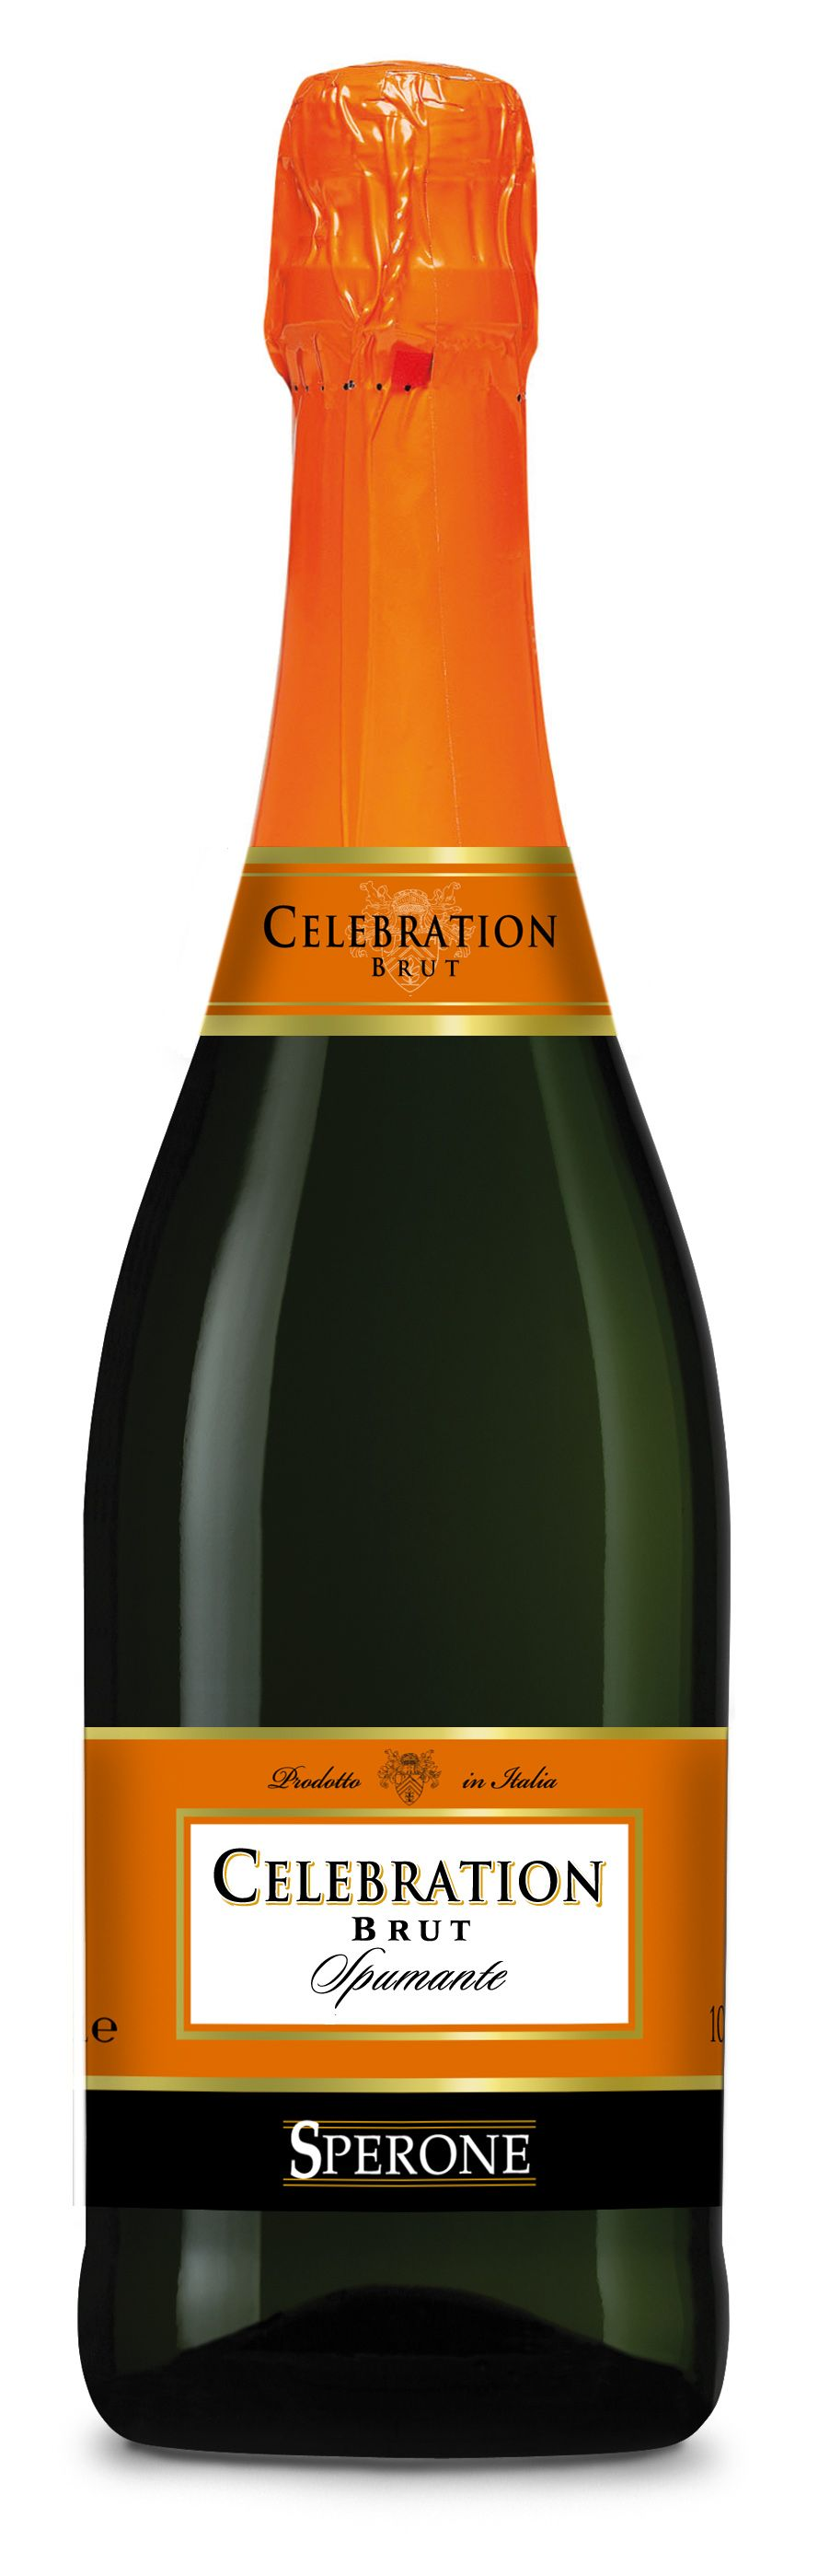 Sperone Celebration Brut